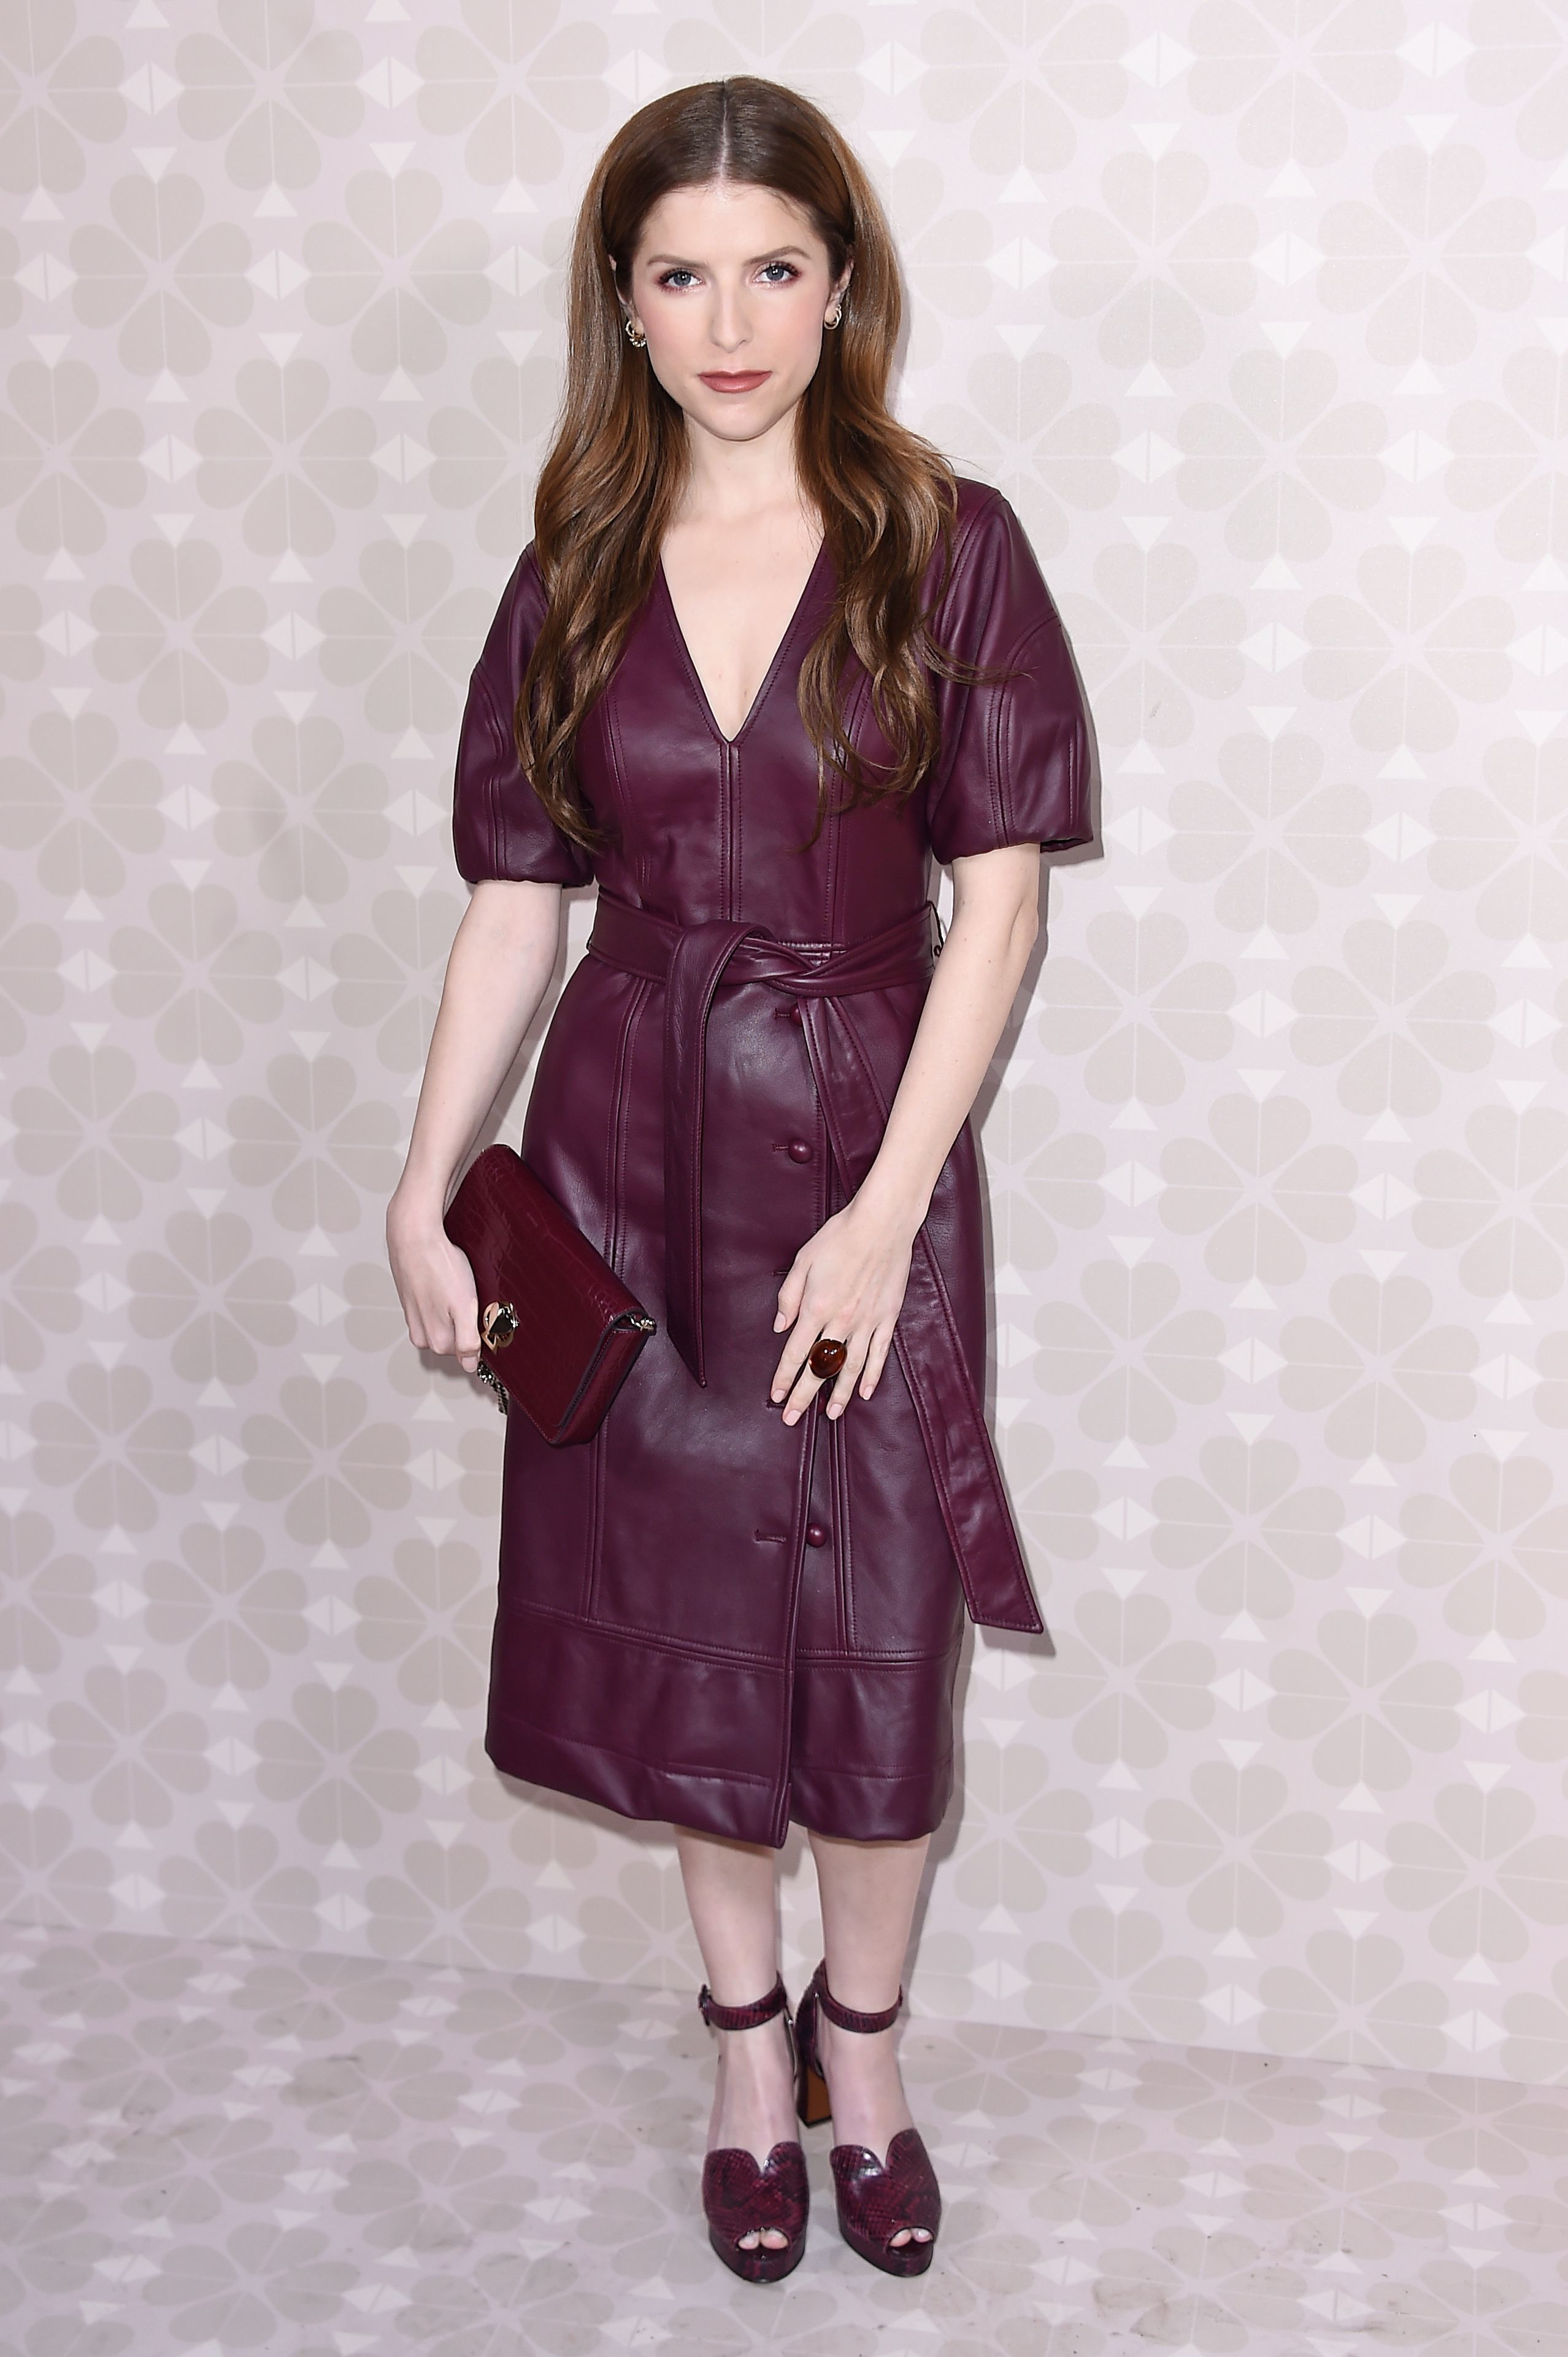 Anna Kendrick attends the Kate Spade show for Spring/Summer 2020 at New York Fashion Week on Sept. 7, 2019.